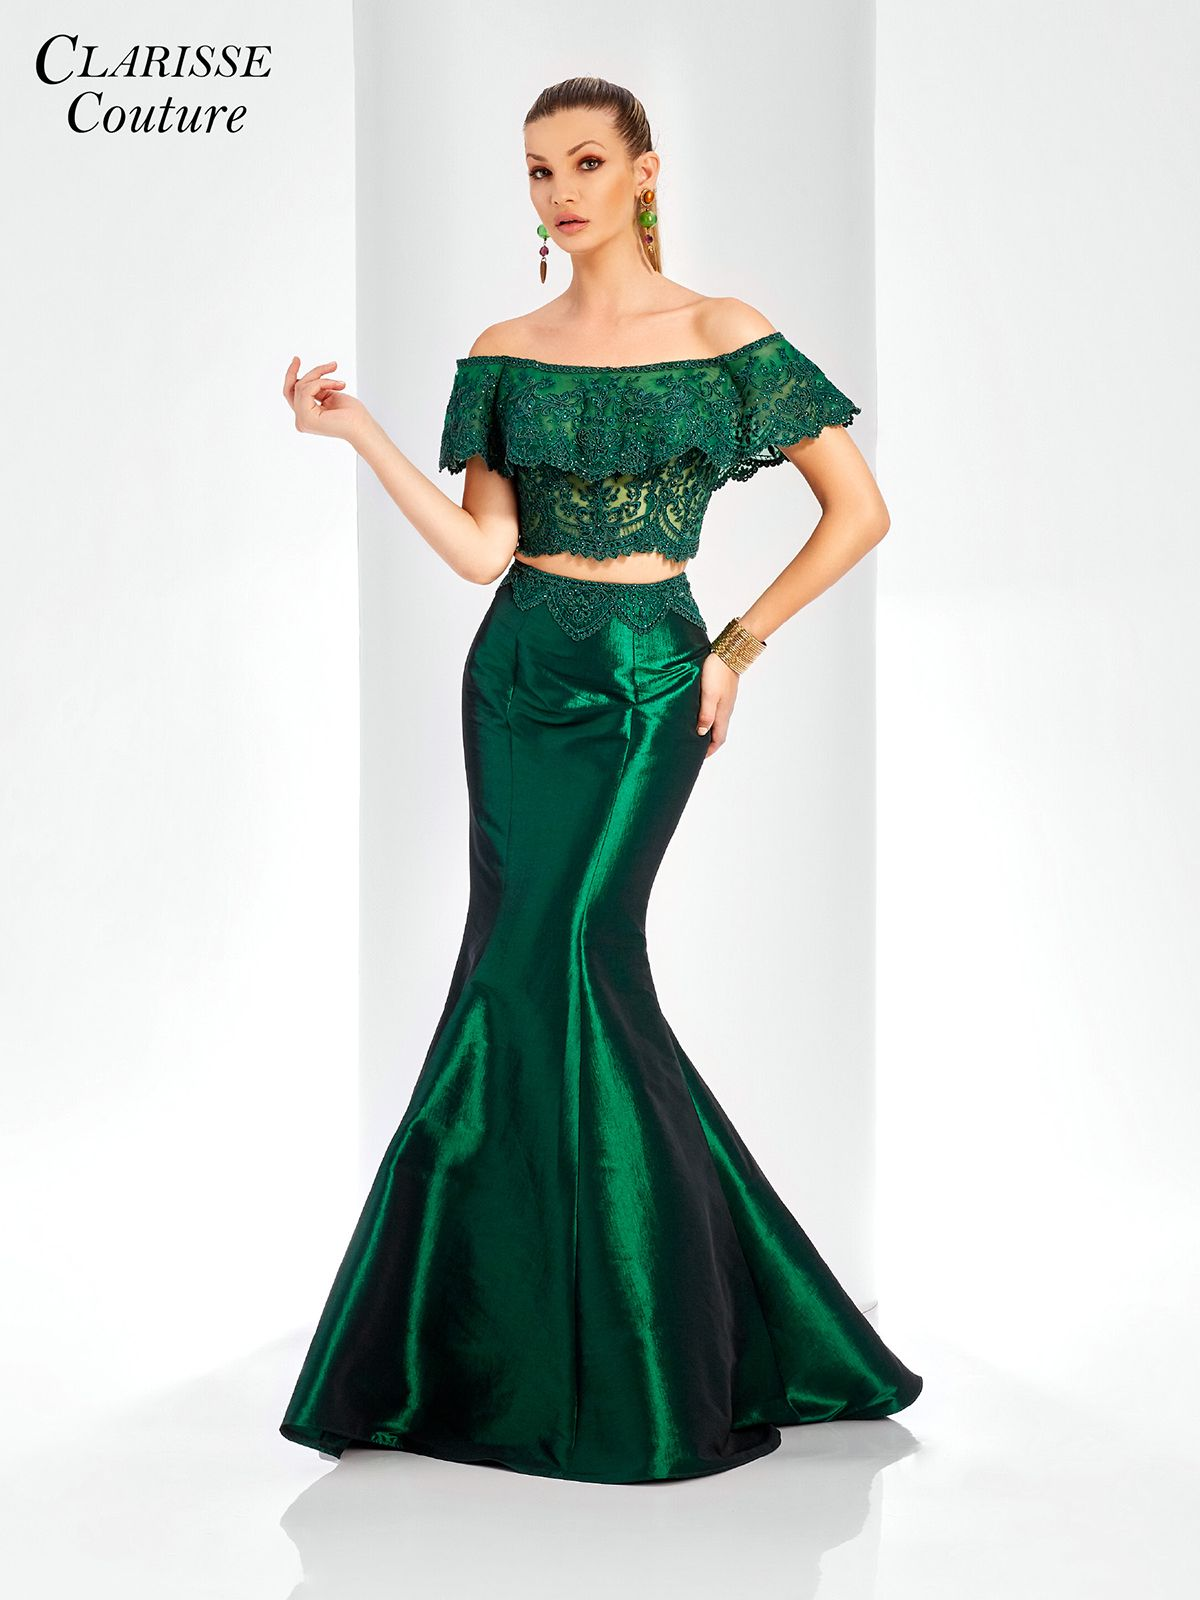 Off the shoulder two piece mermaid dress in evening